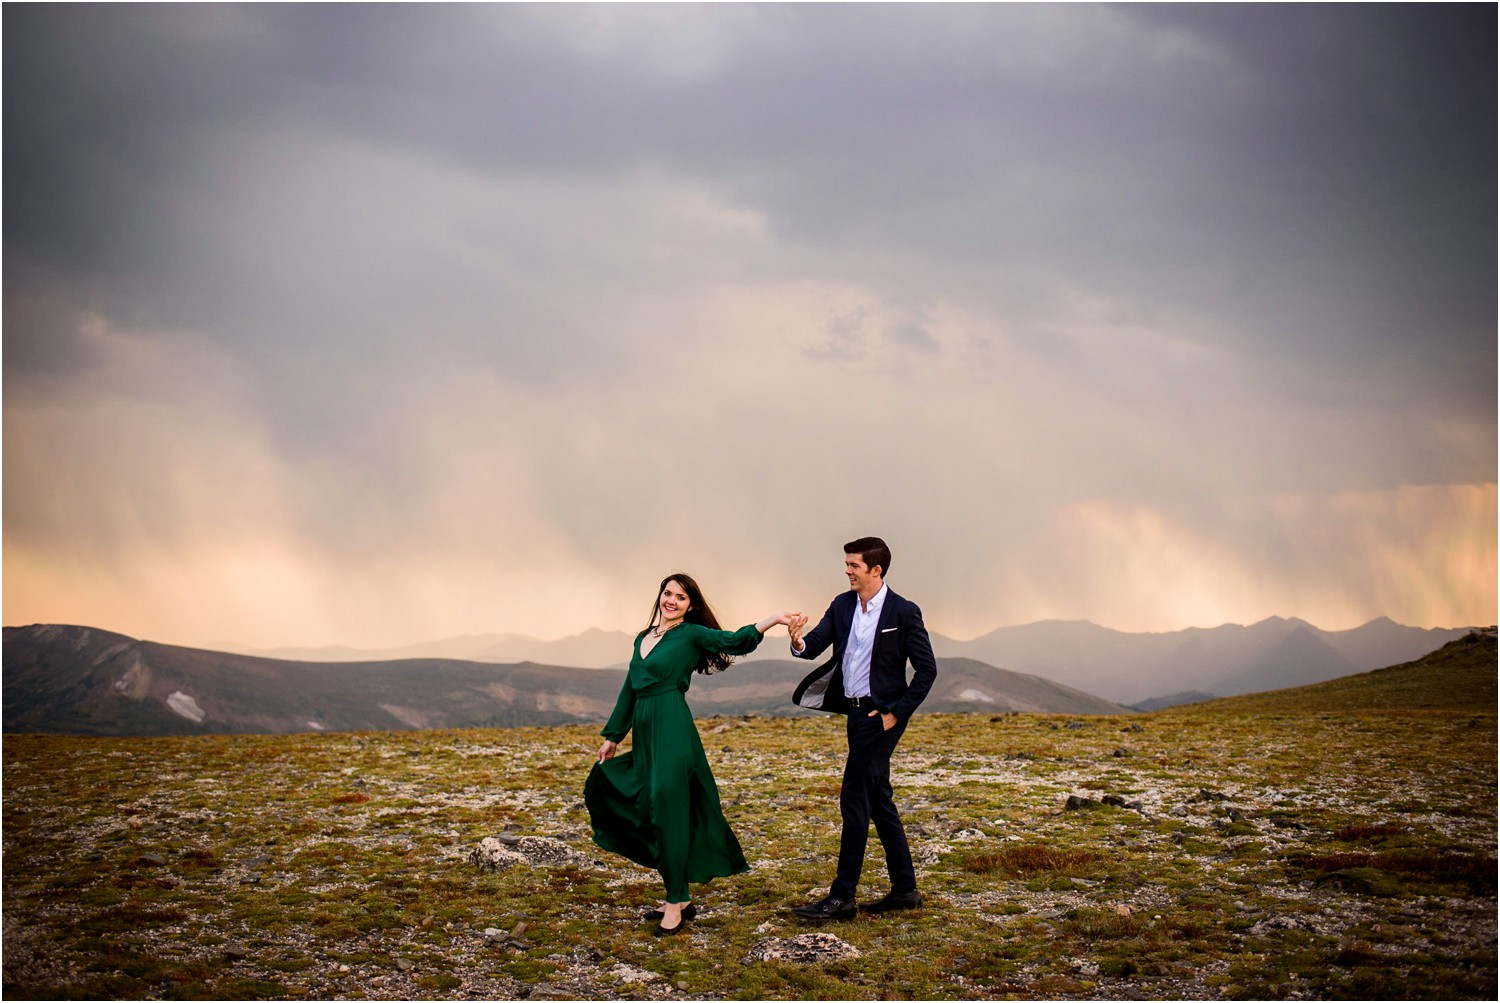 Rocky-mountain-national-Park-engagement-photography_0020.jpg